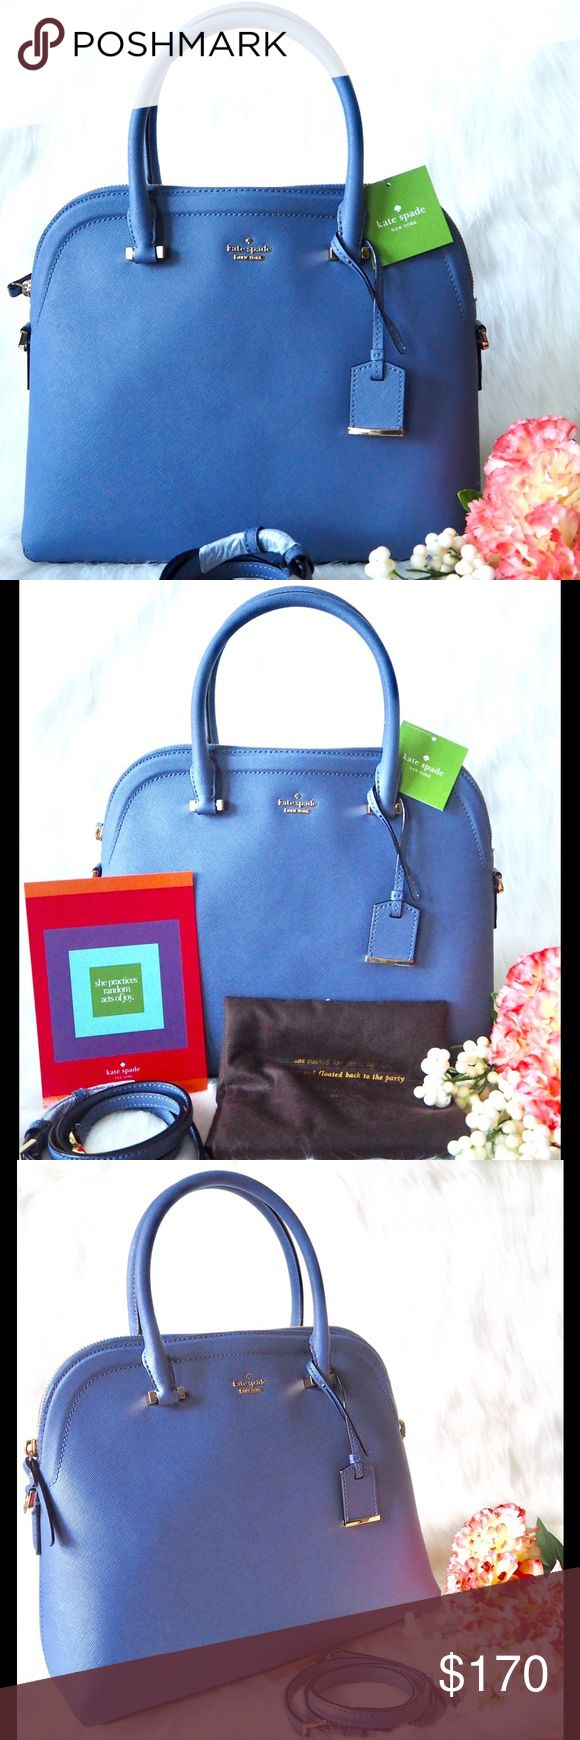 ❣️NWT Kate Spade Cameron Street Margot Brand new. Dust bag included. kate spade Bags Satchels